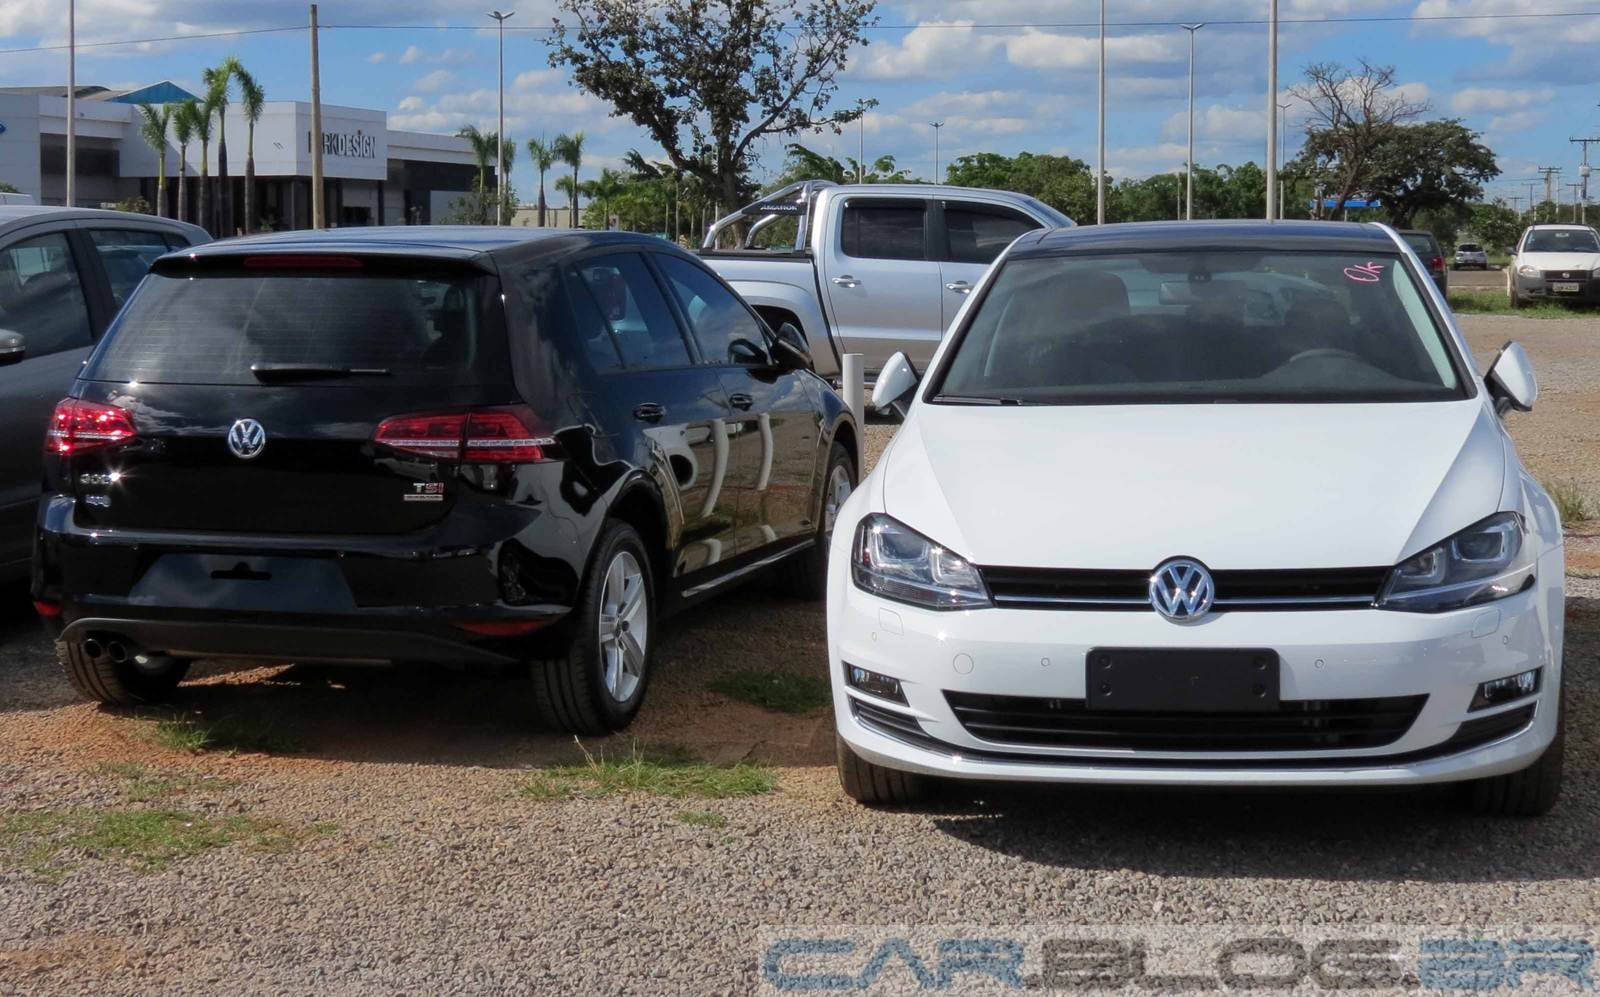 Novo vw polo gti 2015 fotos e especifica 231 245 es oficiais car blog br - Novo Vw Golf 2014